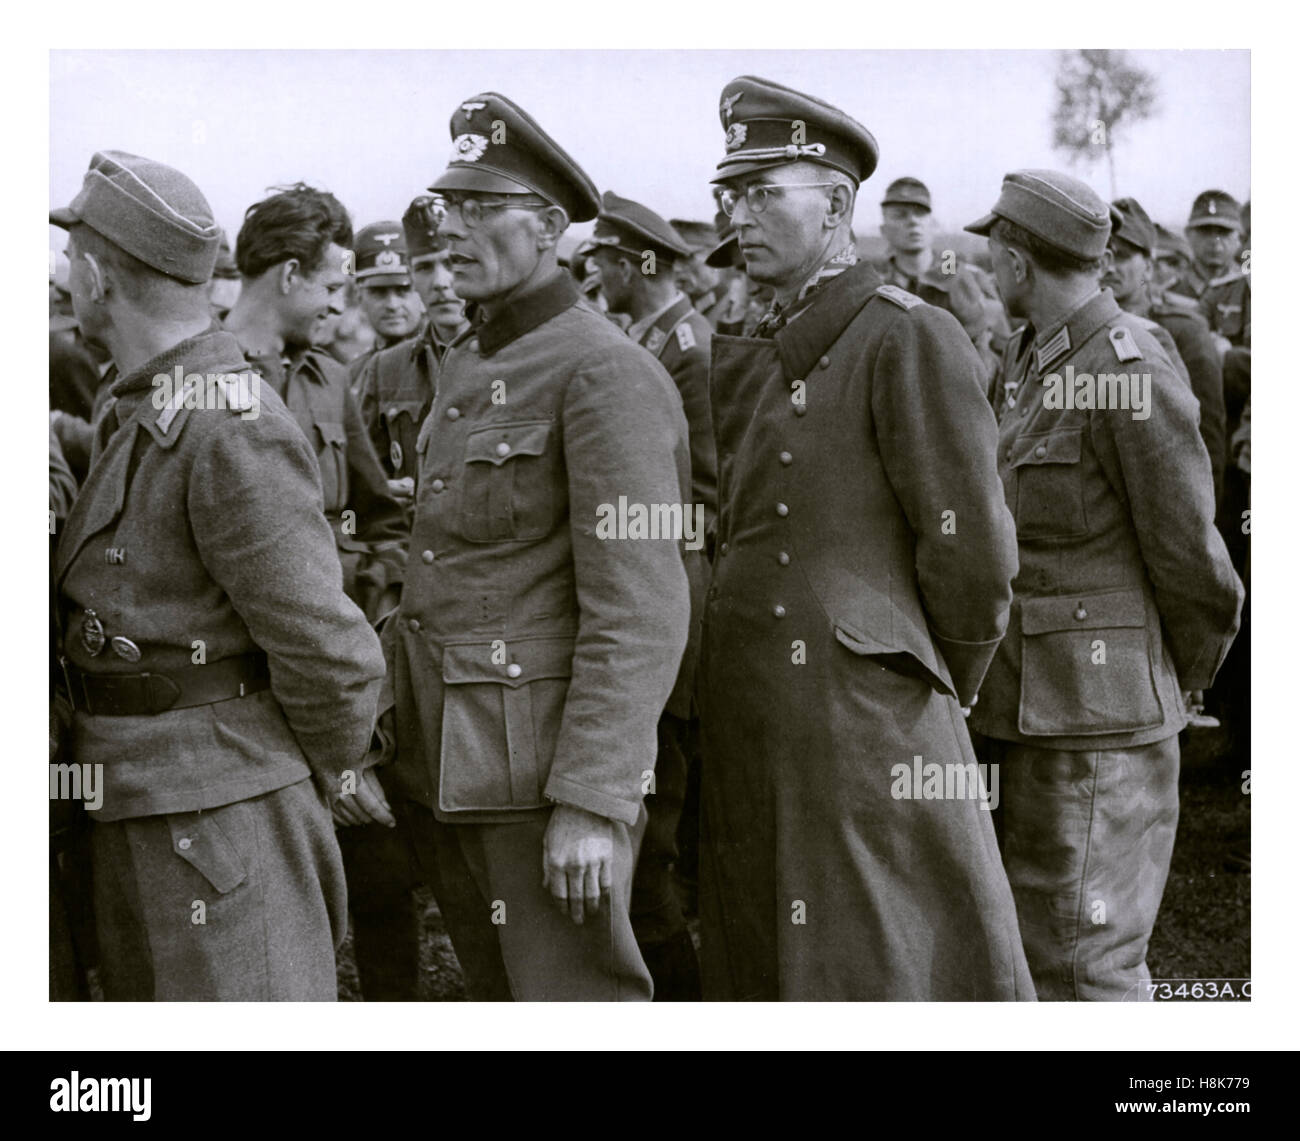 WW2 German prisoners of war, Wermacht officers and enlisted men in uniform standing grouped together - Stock Image